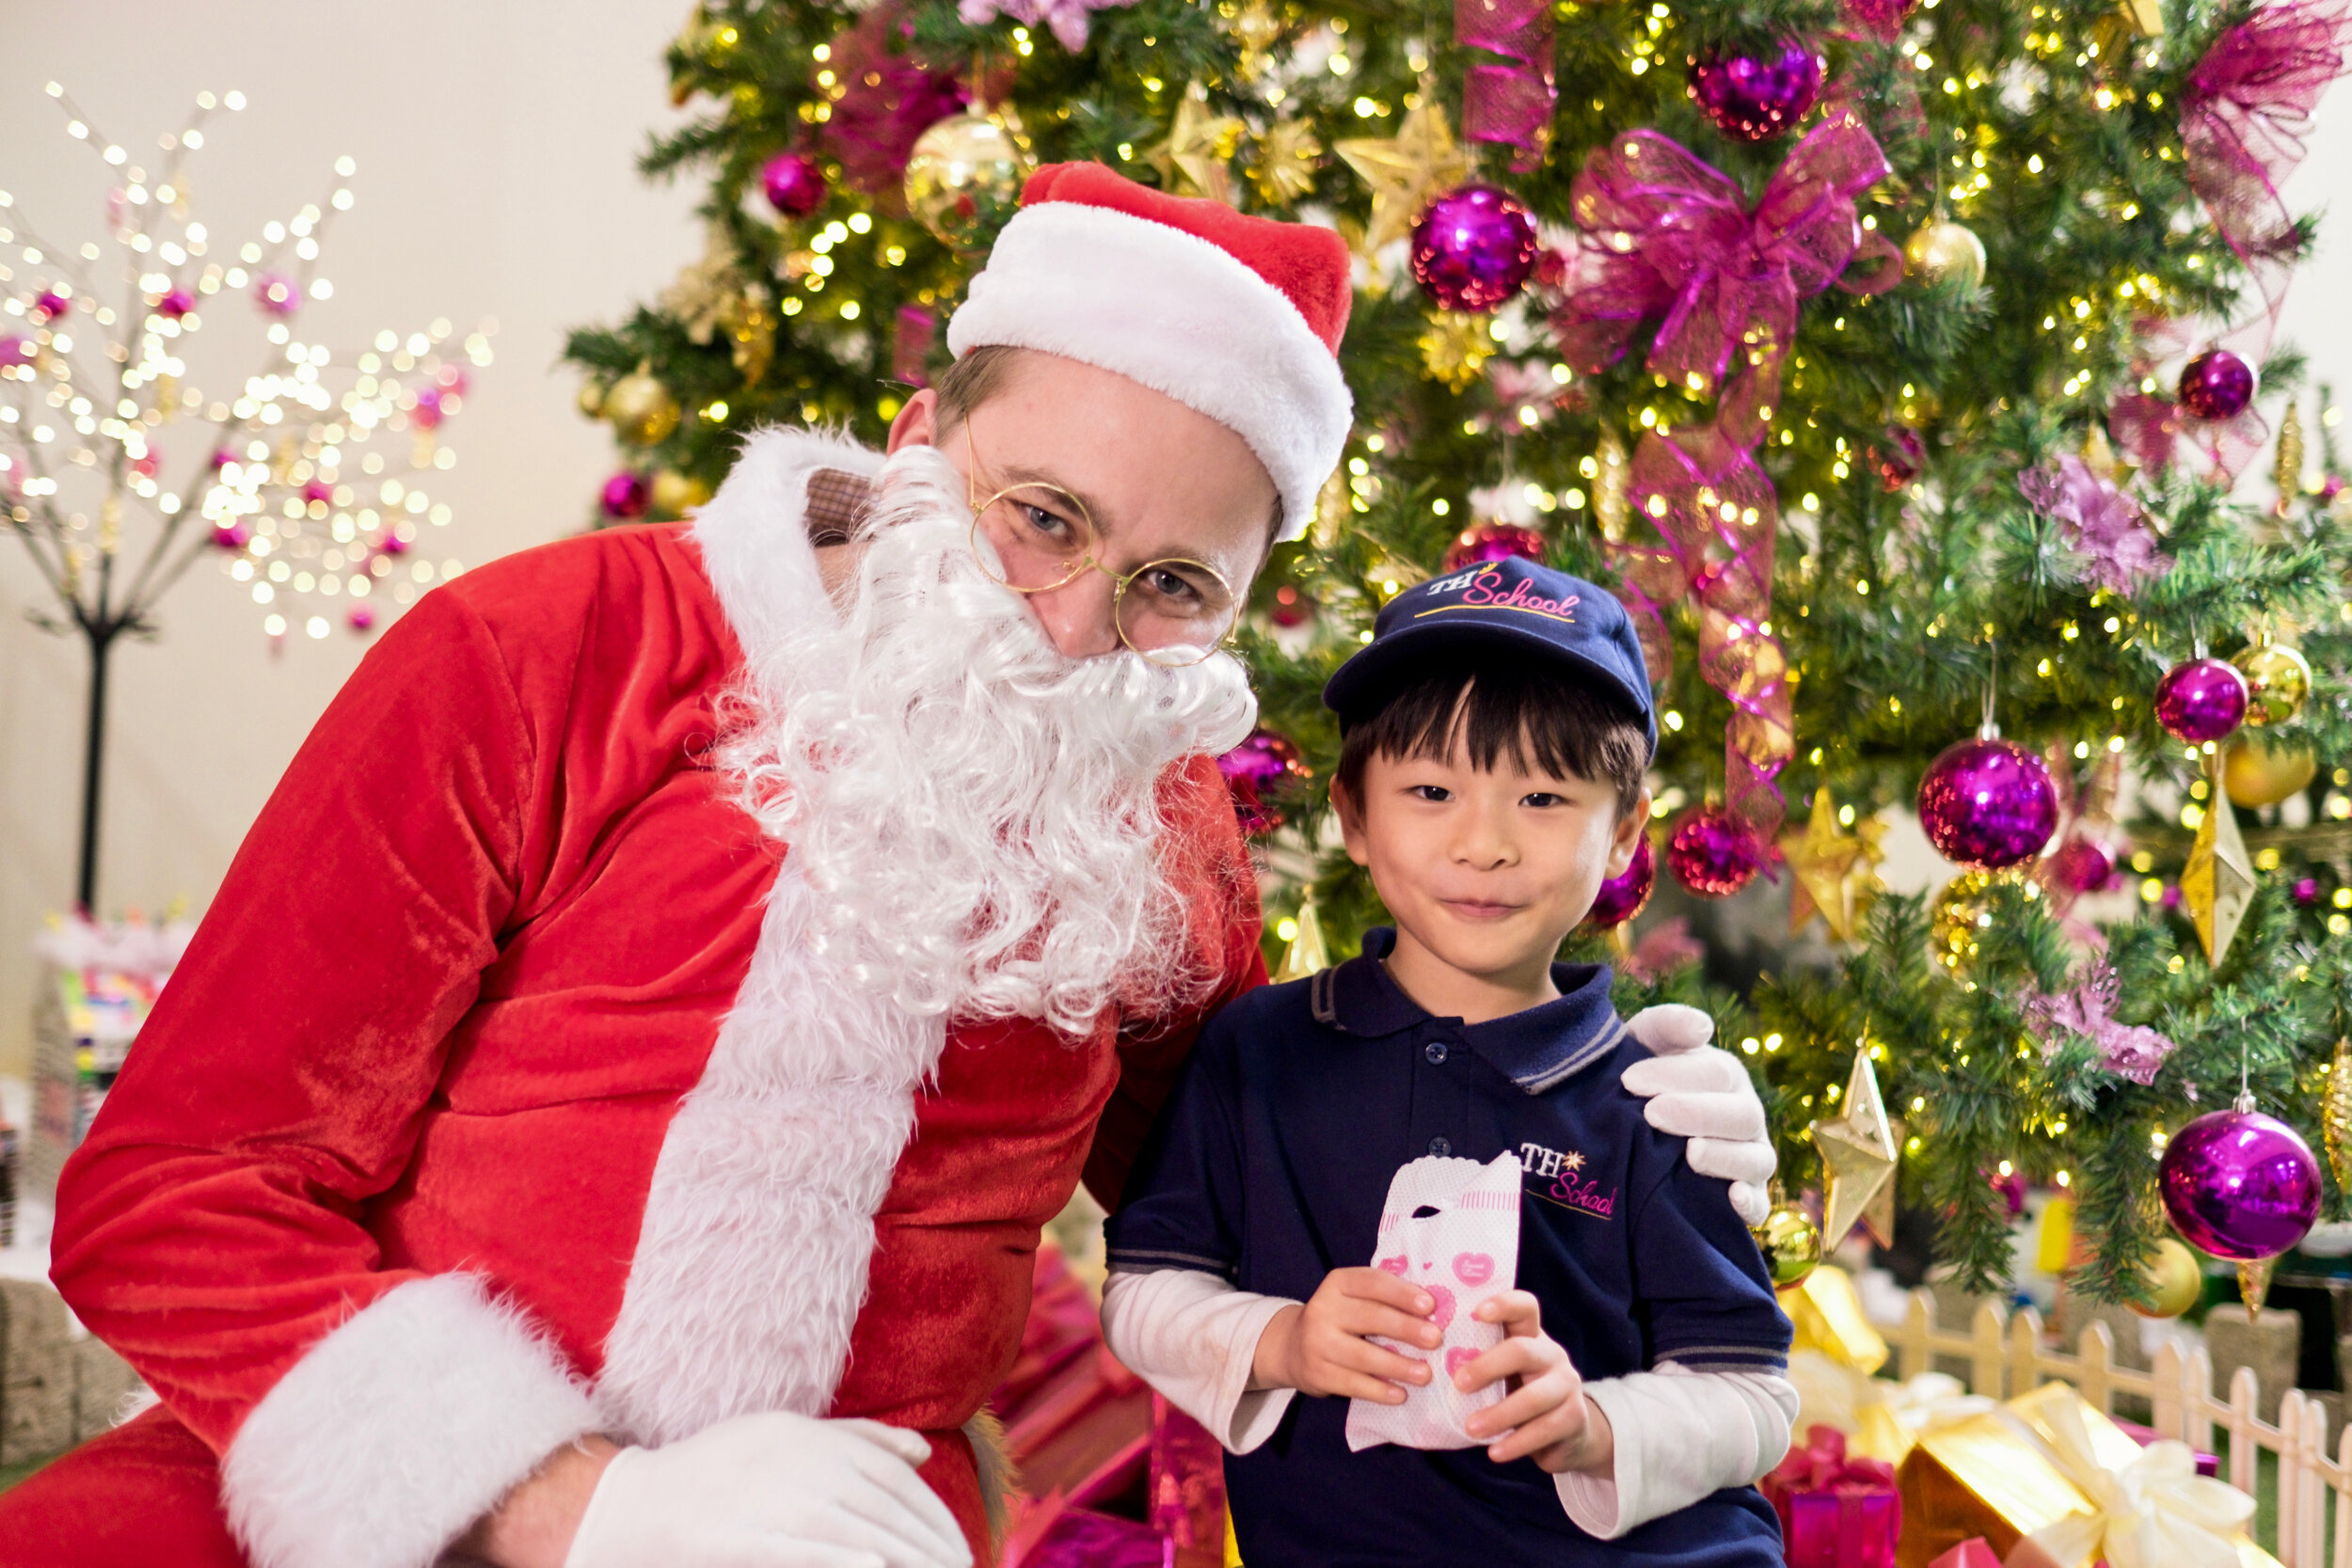 Photoshoot with Santa Clause-767.jpg